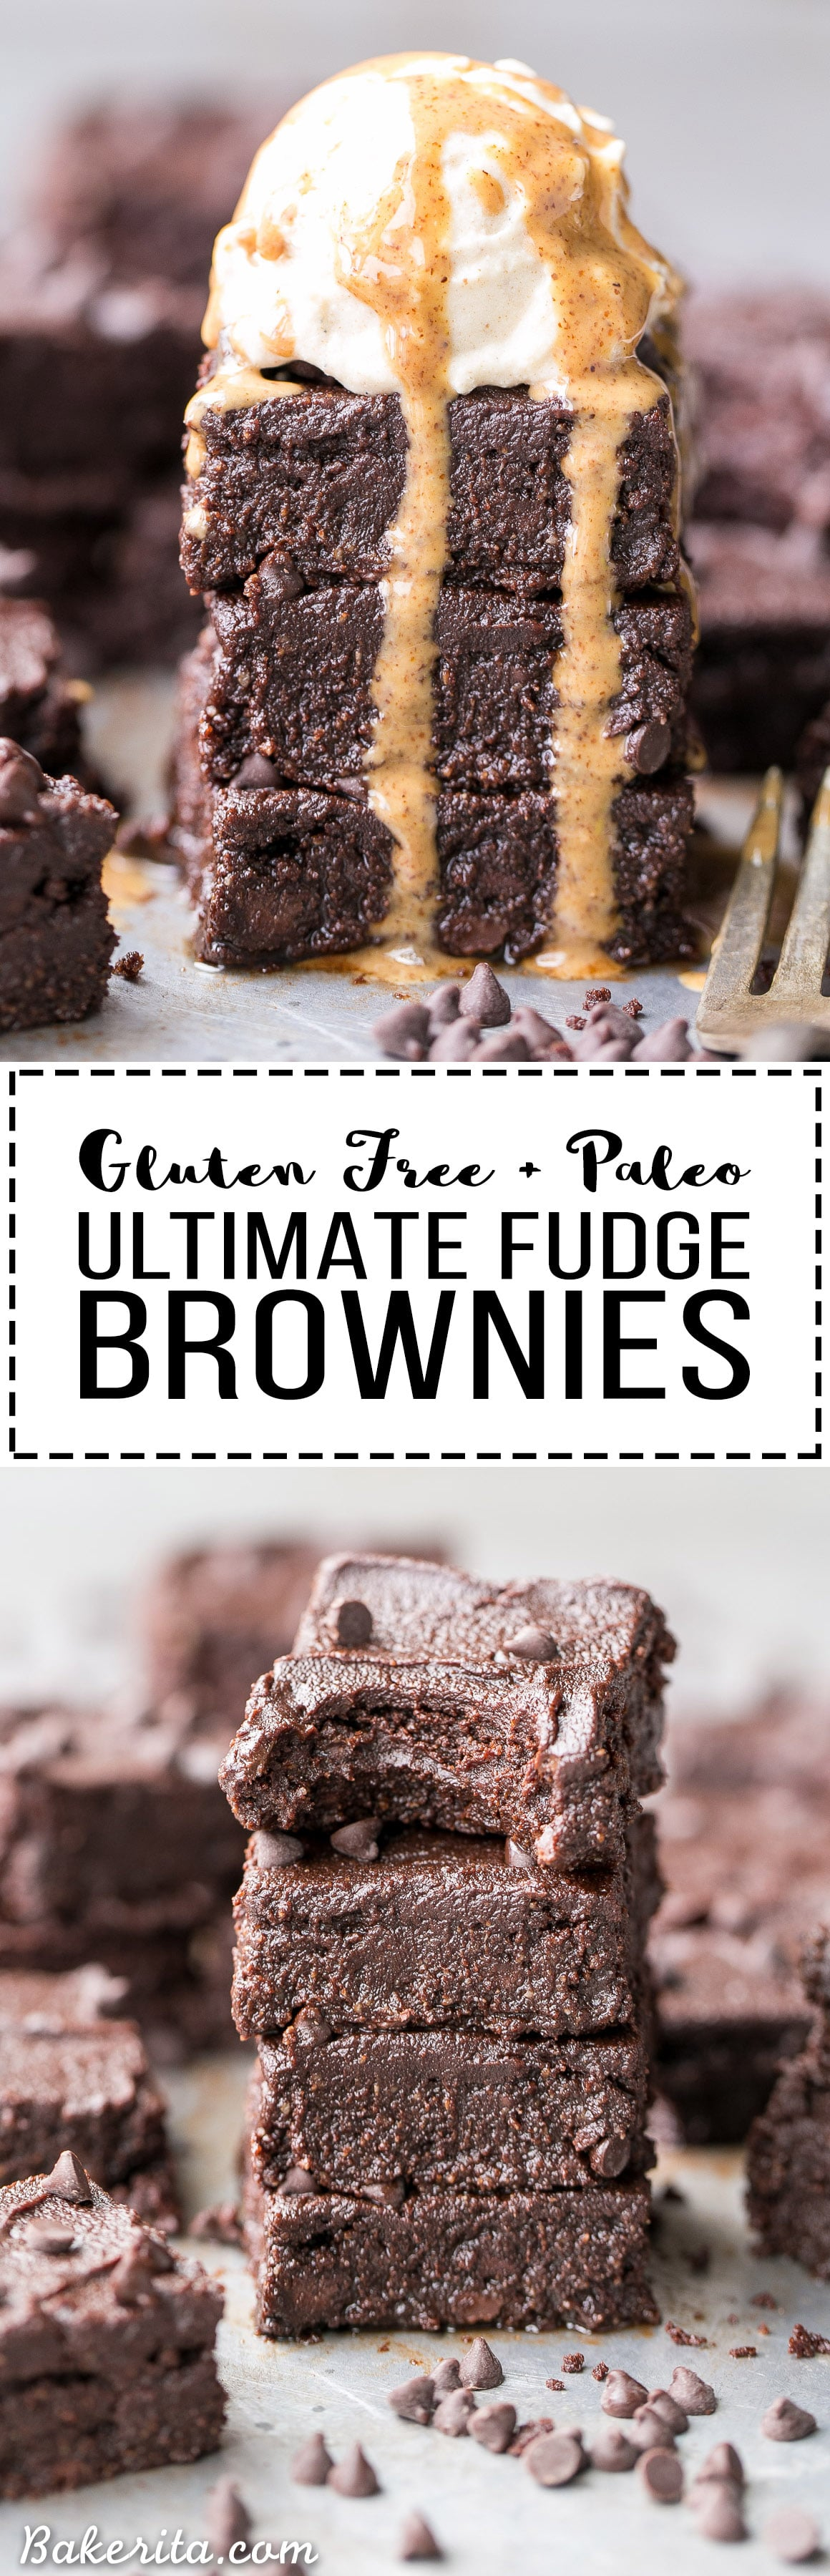 These are the Ultimate Gluten Free Fudge Brownies! This easy recipe makes incredibly fudgy, melt in your mouth chocolate brownies with an optional paleo chocolate frosting on top. This recipe is refined sugar free and Paleo-friendly.